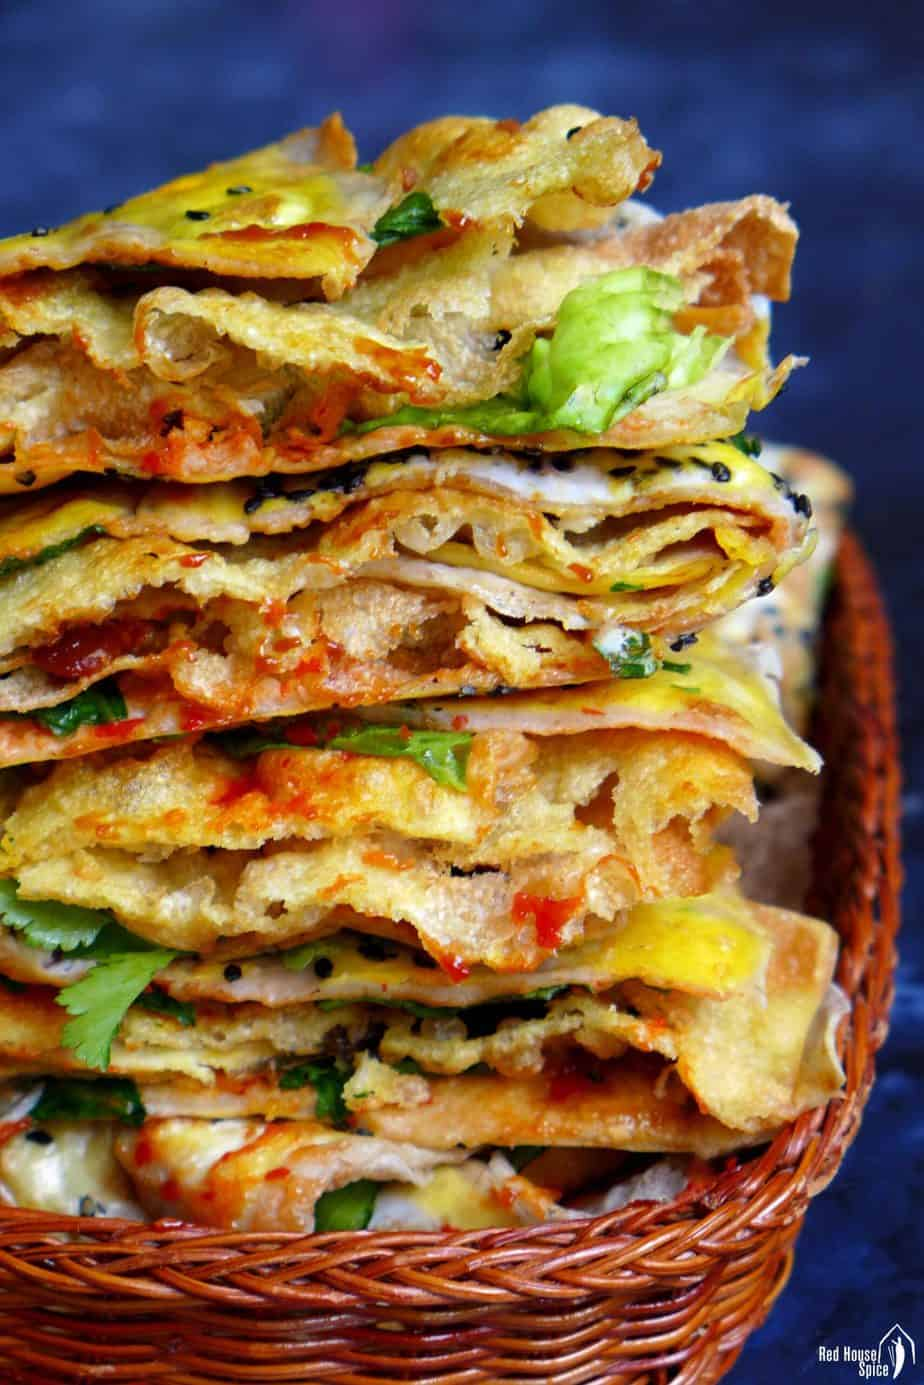 A pile of Jian Bing, Chinese crepes